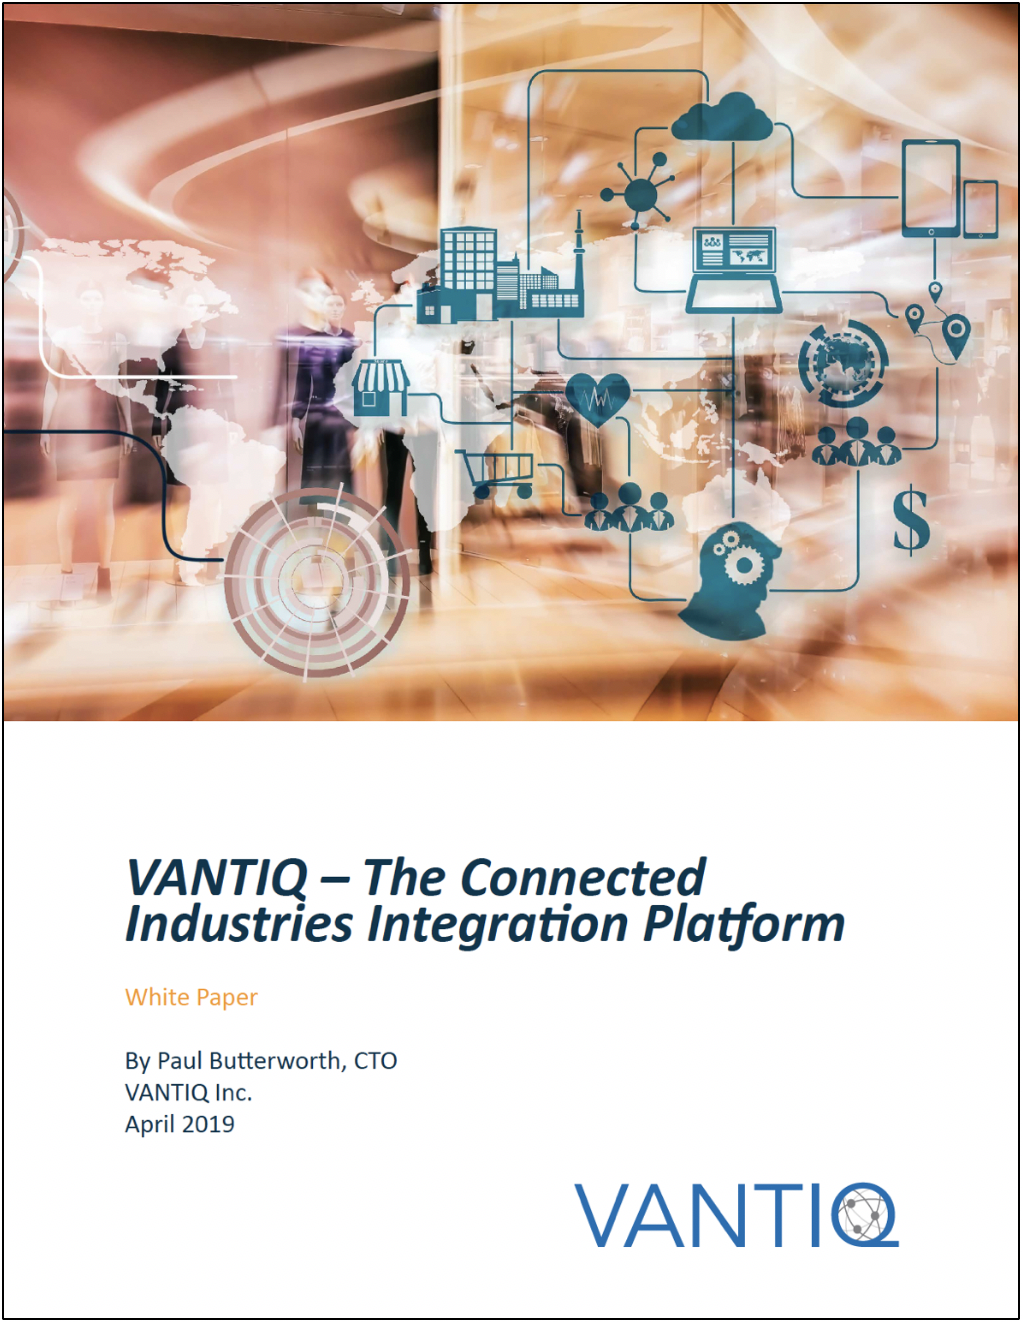 vantiq connected industries white paper cover image